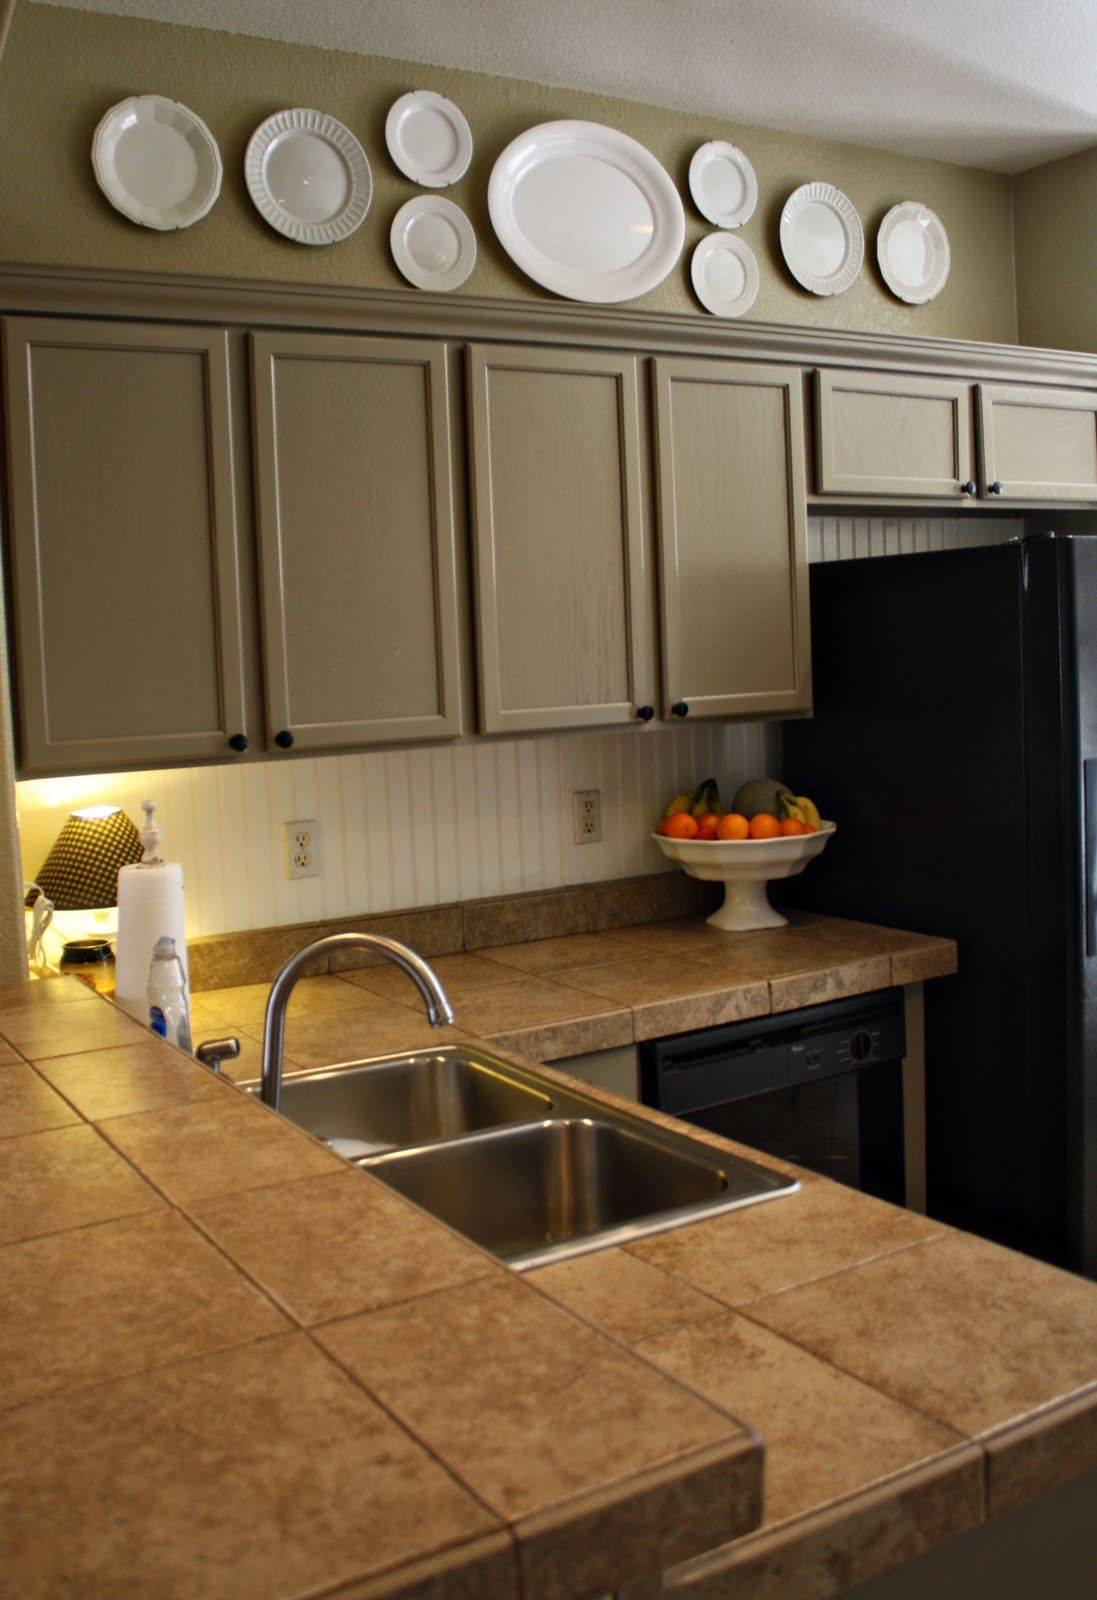 hanging kitchen cabinets faucets review simple clean going in a new direction above my